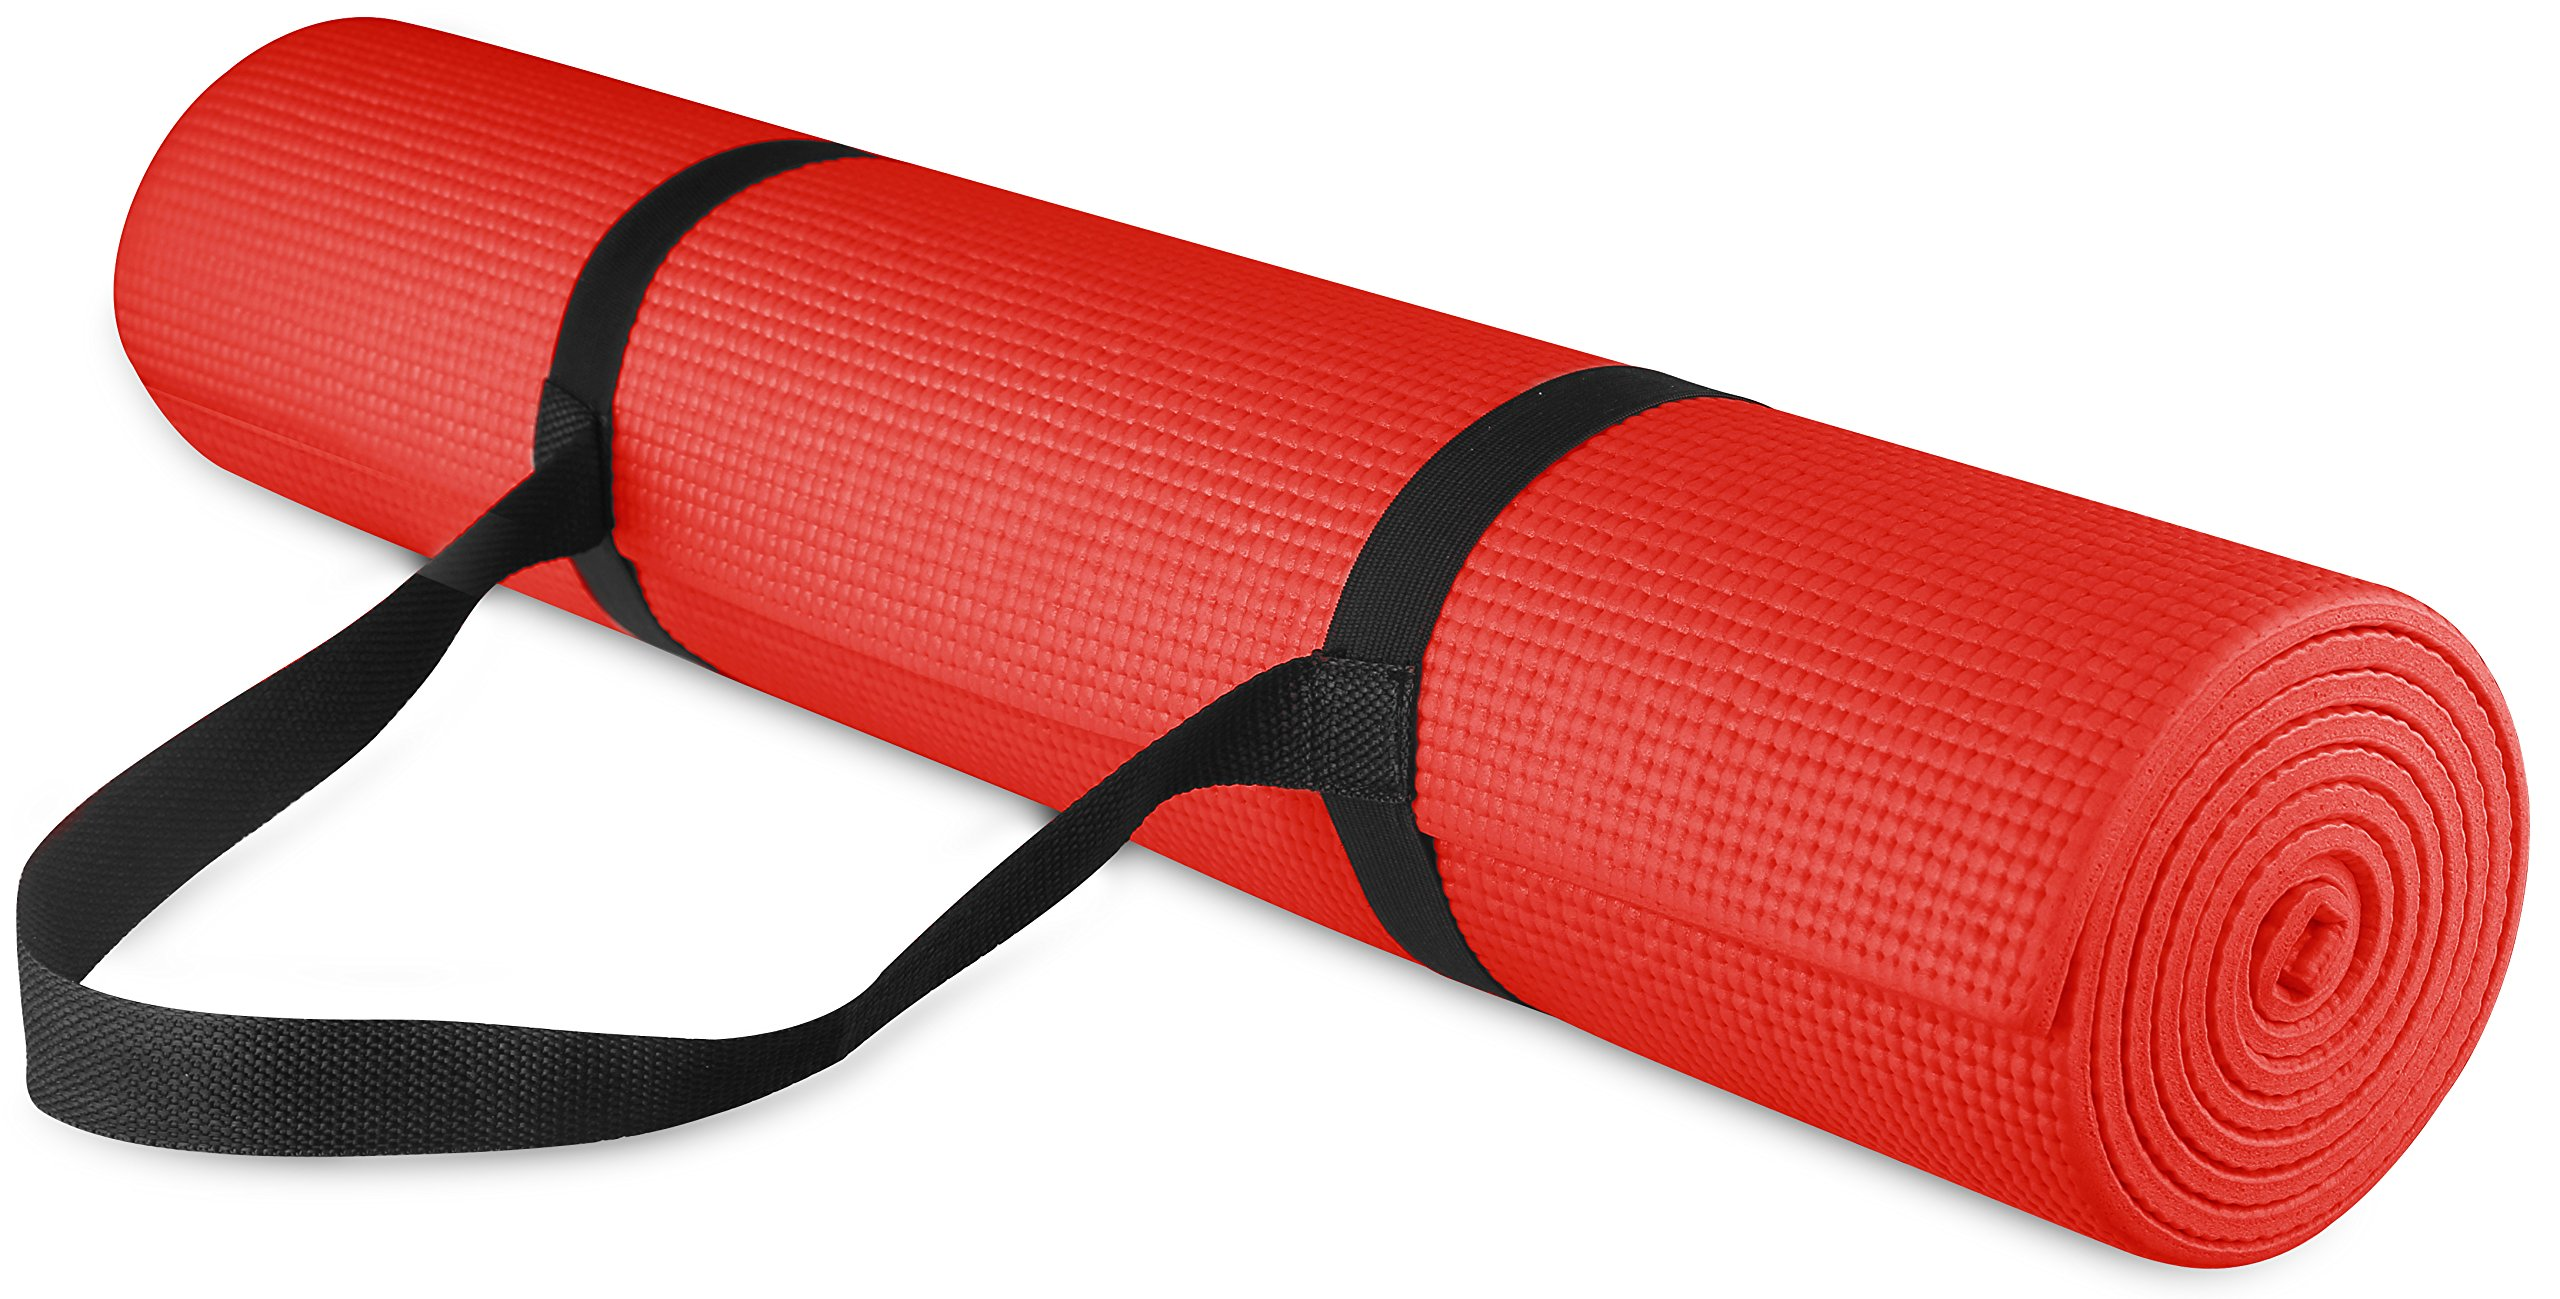 BalanceFrom GoYoga All Purpose High Density Non-Slip Exercise Yoga Mat with Carrying Strap, 1/4'', Red